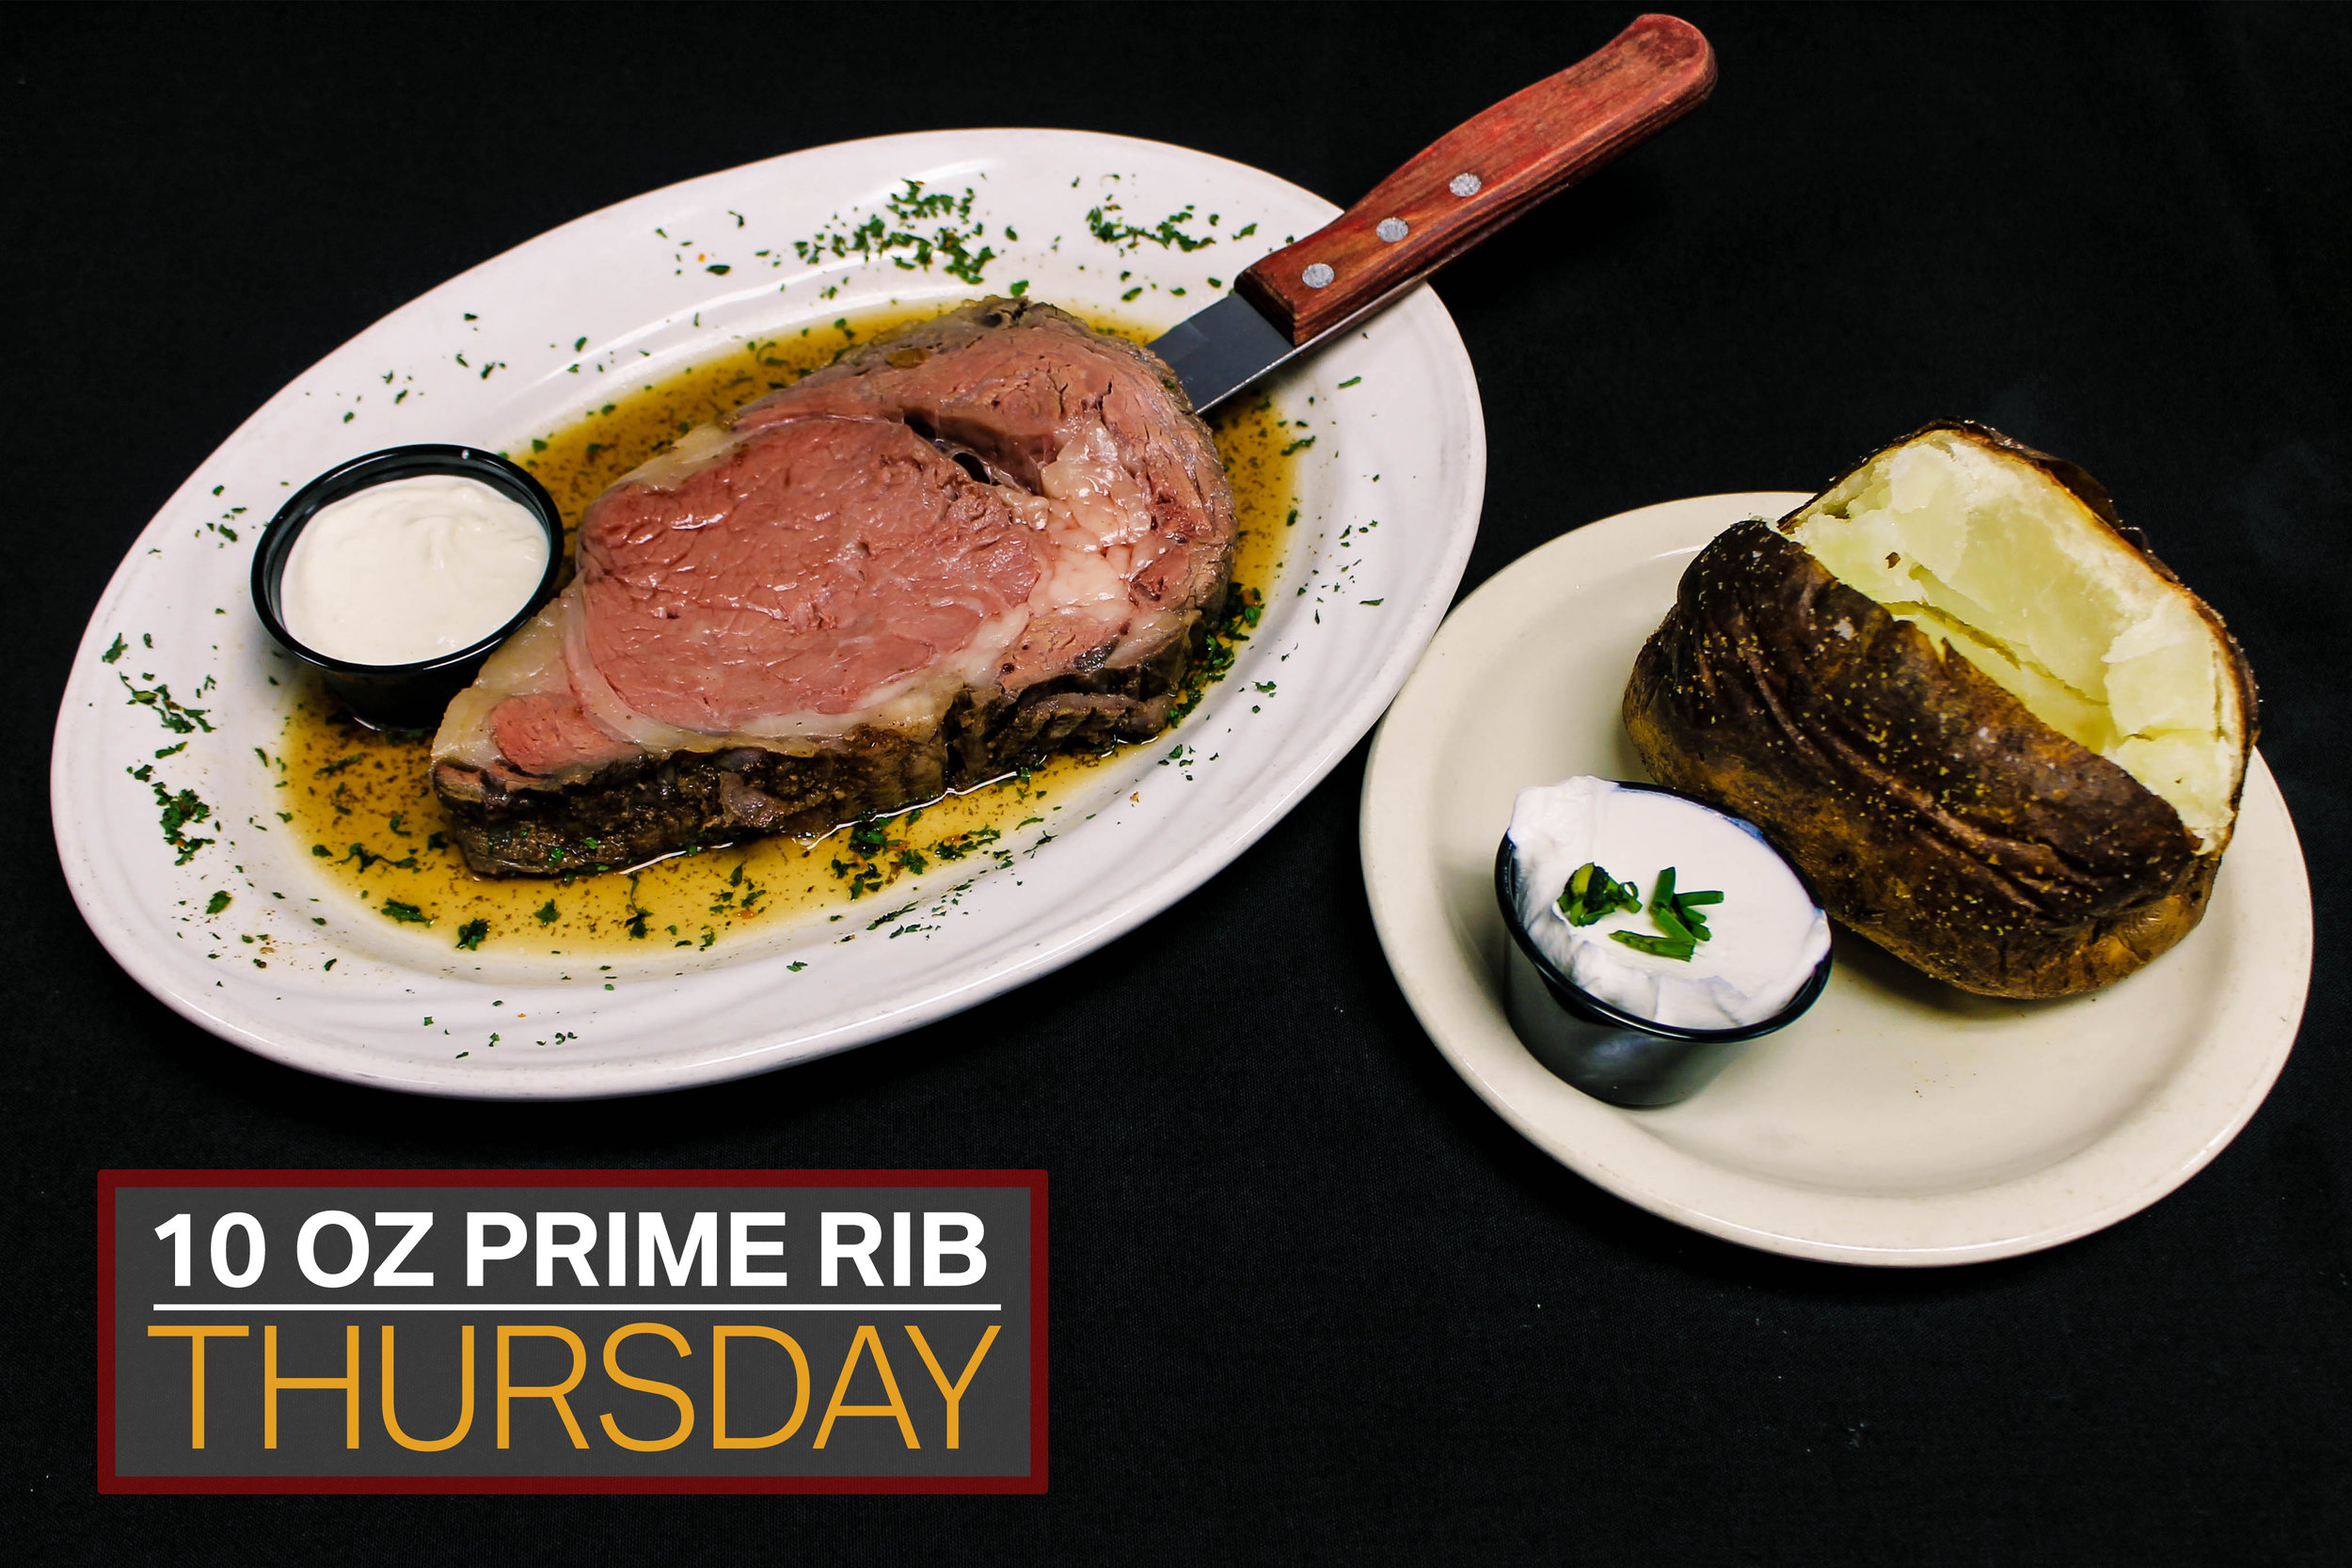 Thursday  10 oz. Prime Rib $16.50  4 P.M. - 10 P.M.